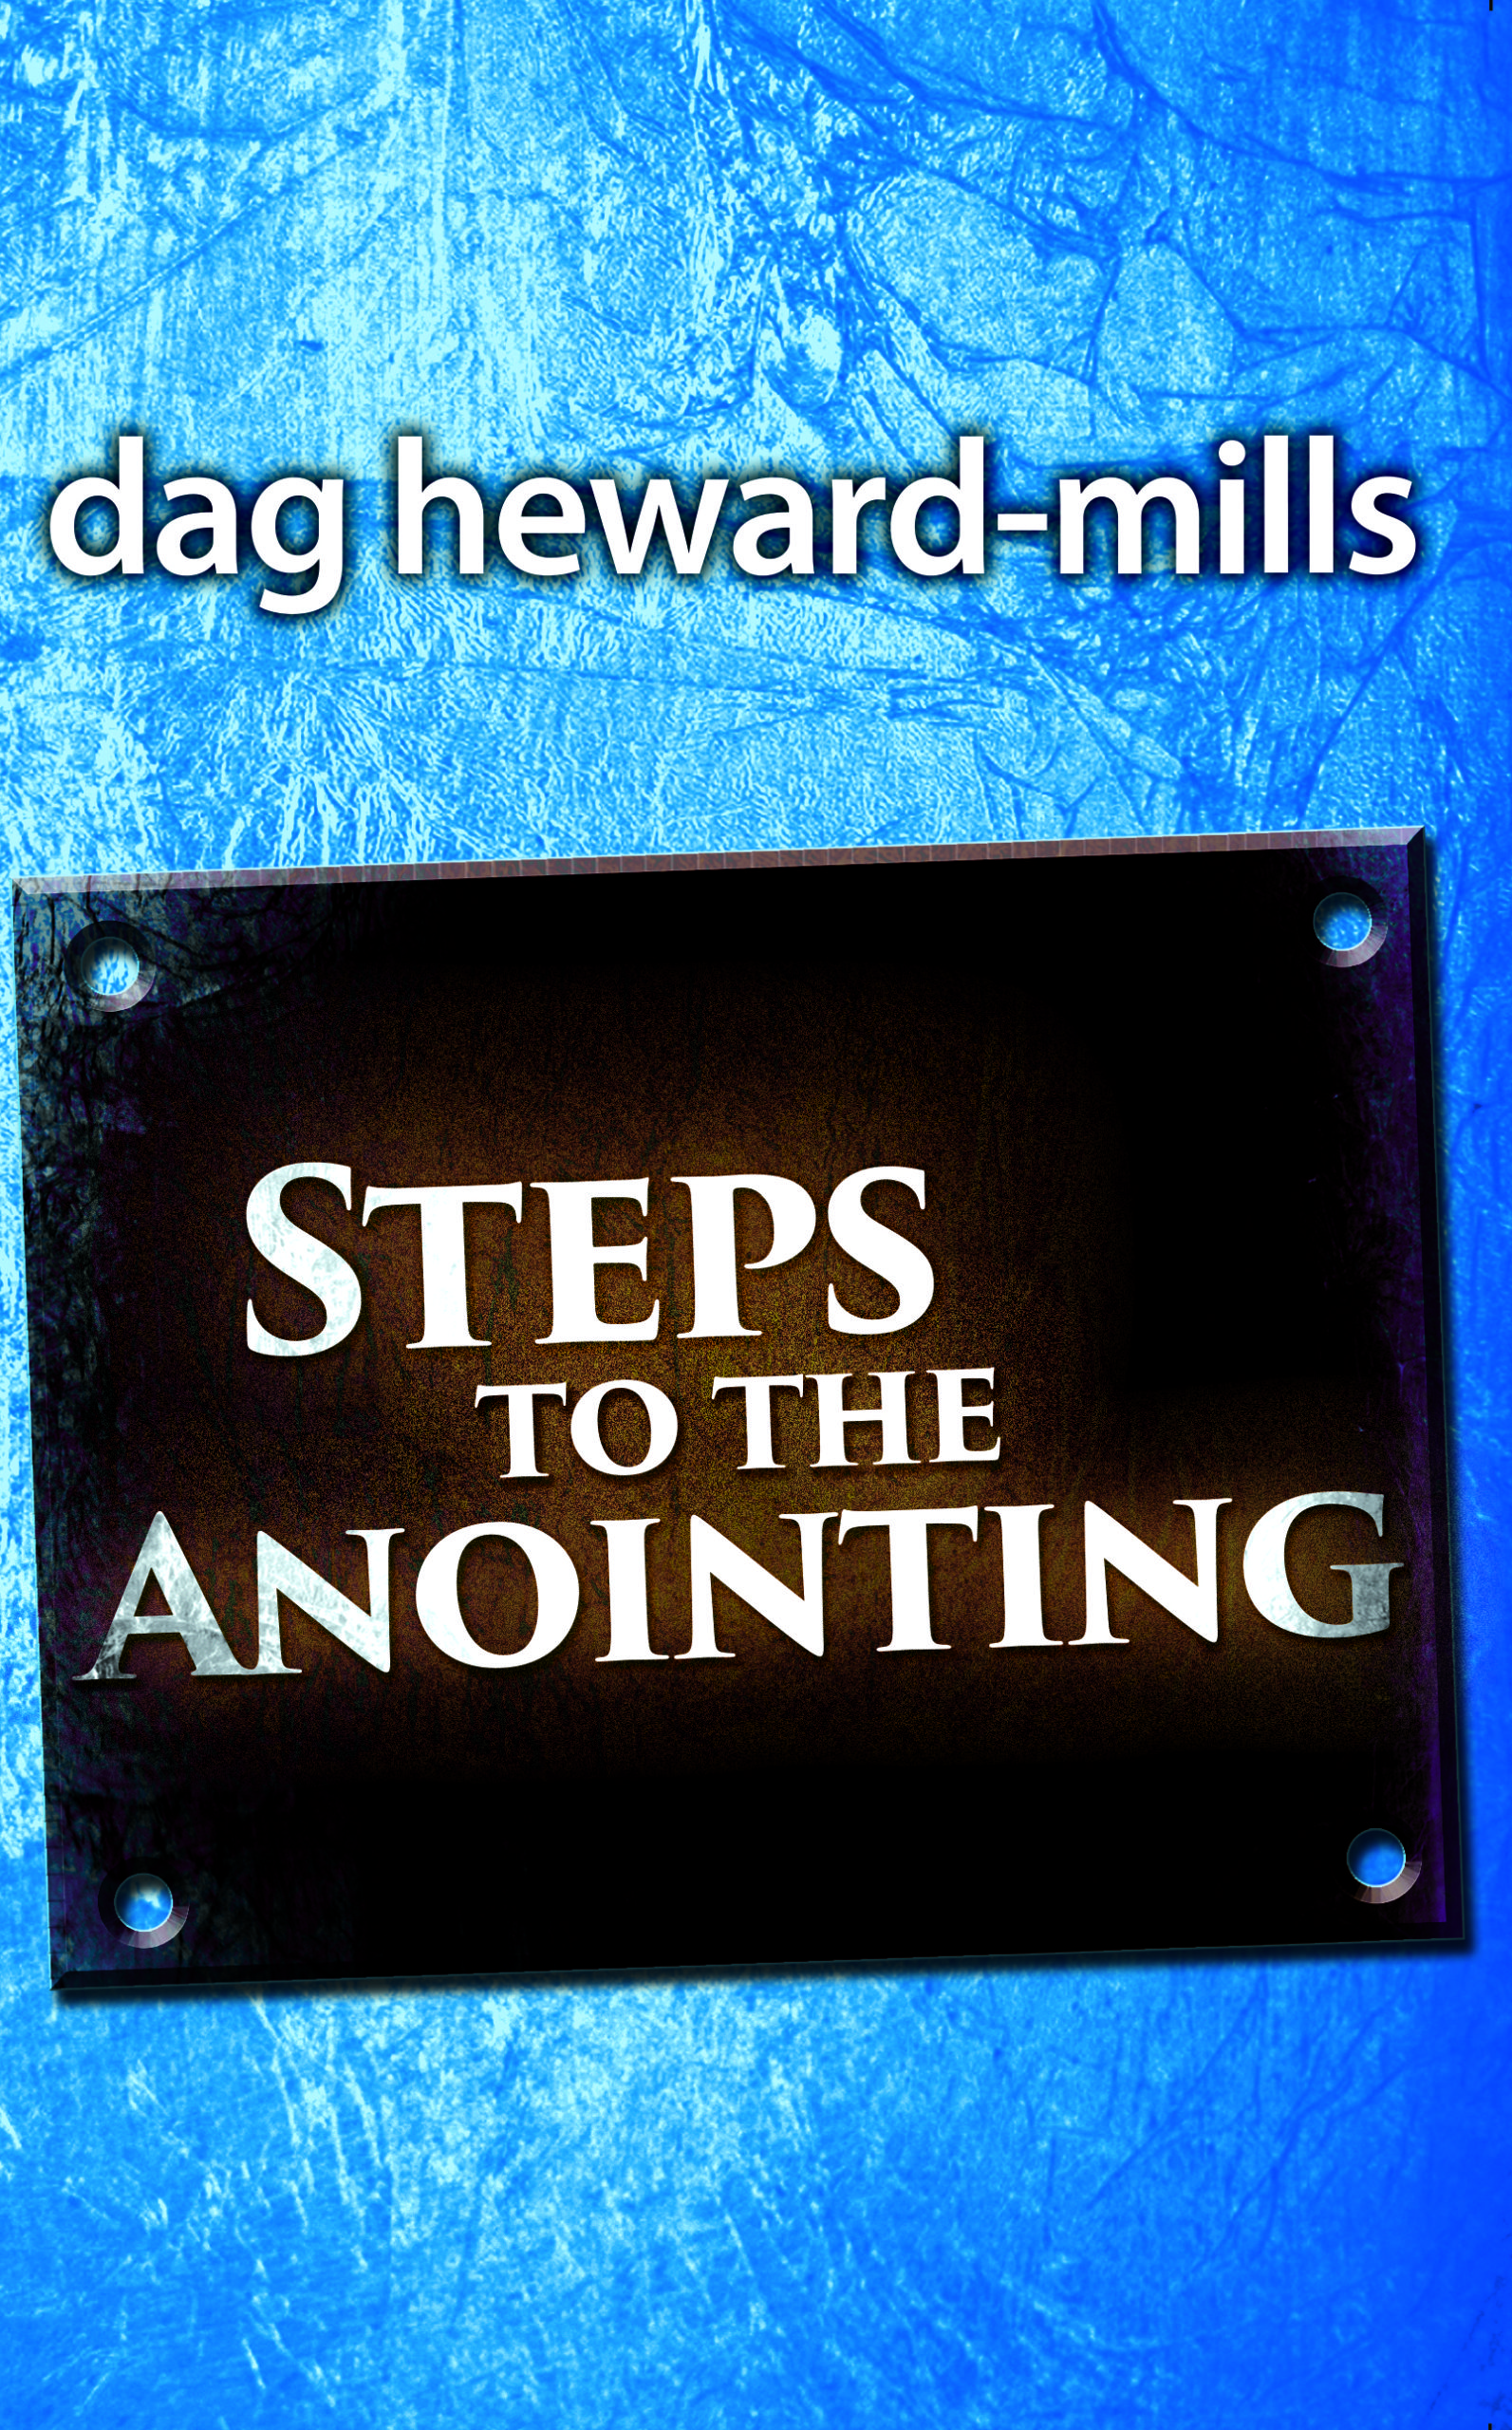 Steps to The Anointing Dag Heward-Mills